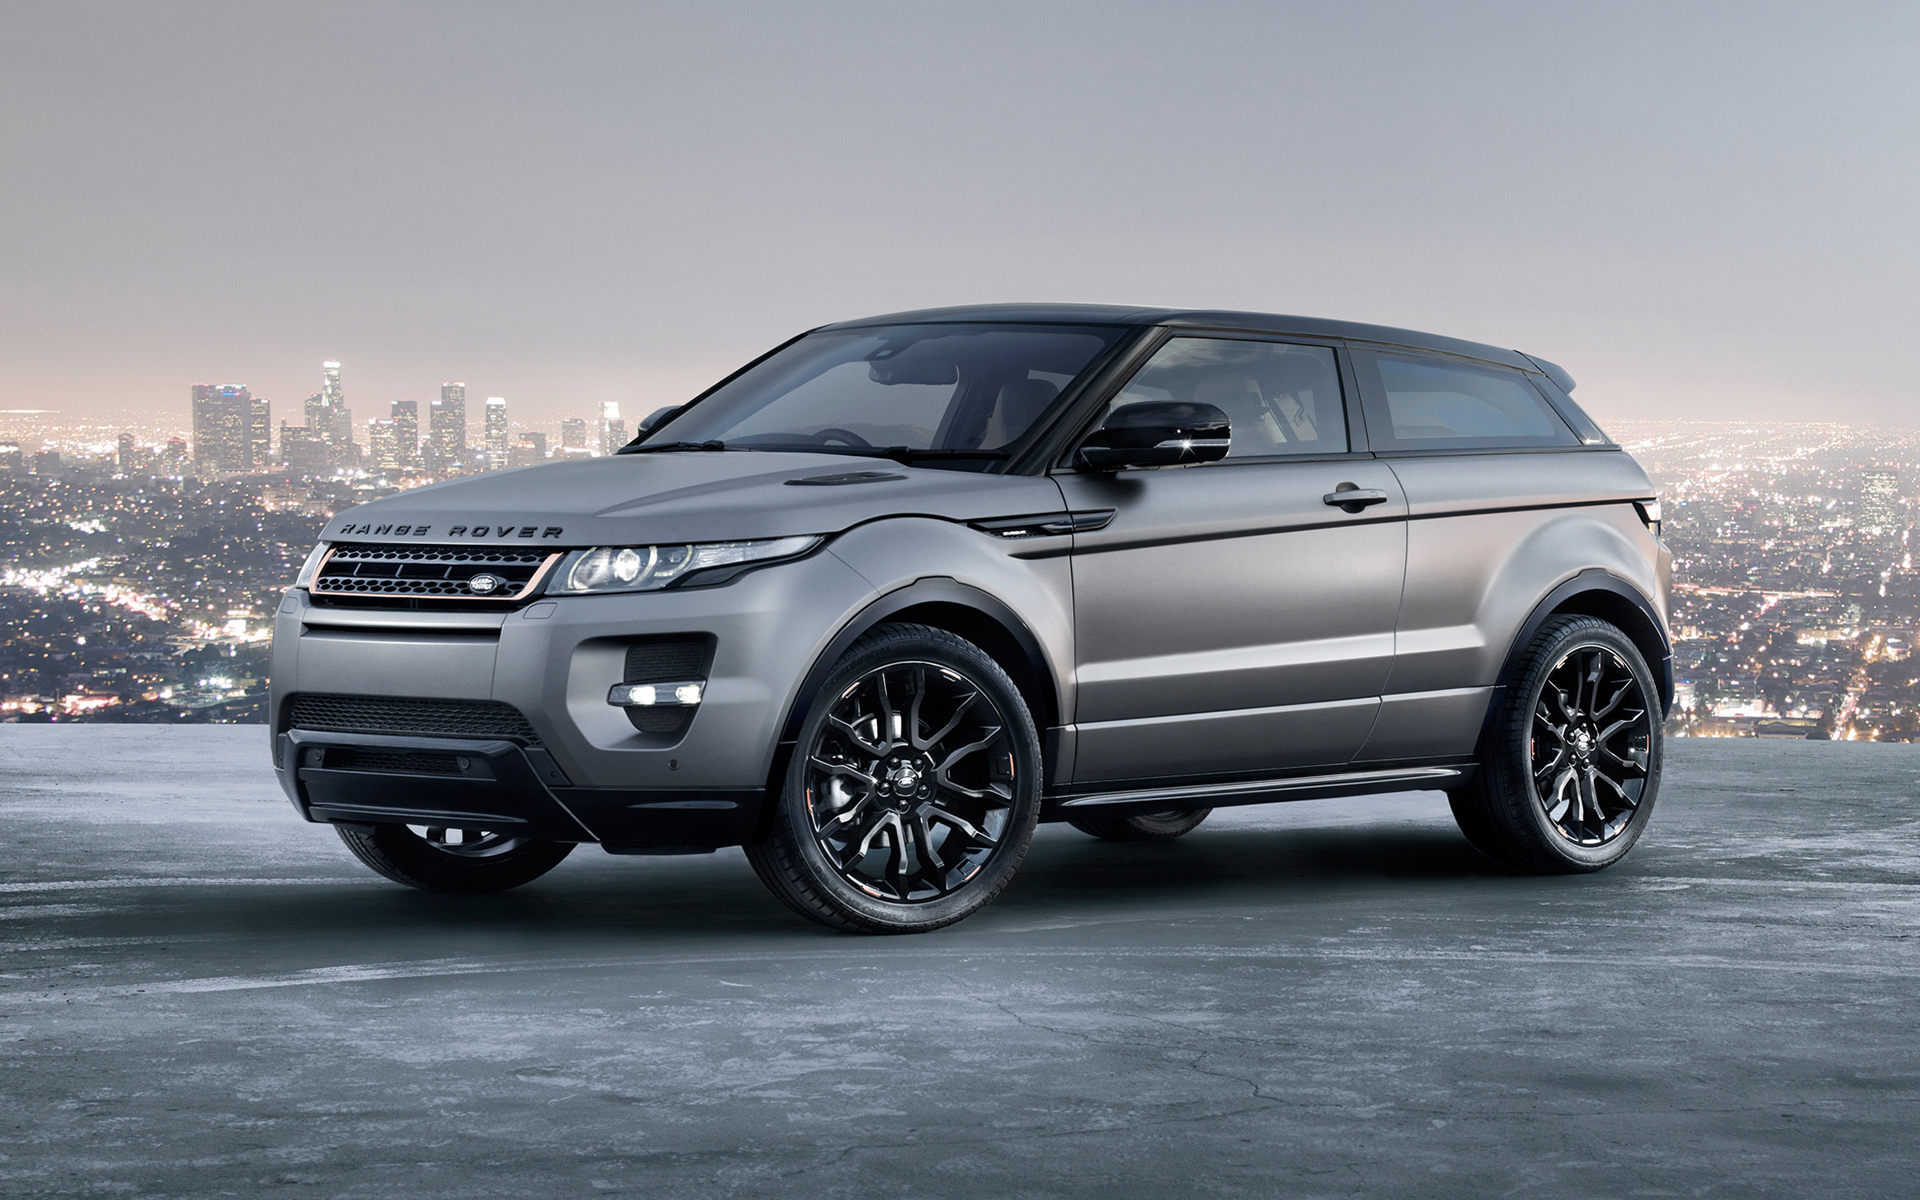 Amazing Wallpaper High Resolution Range Rover - range-rover-wallpapers-29118-29835-hd-wallpapers  Trends_5610032.jpg